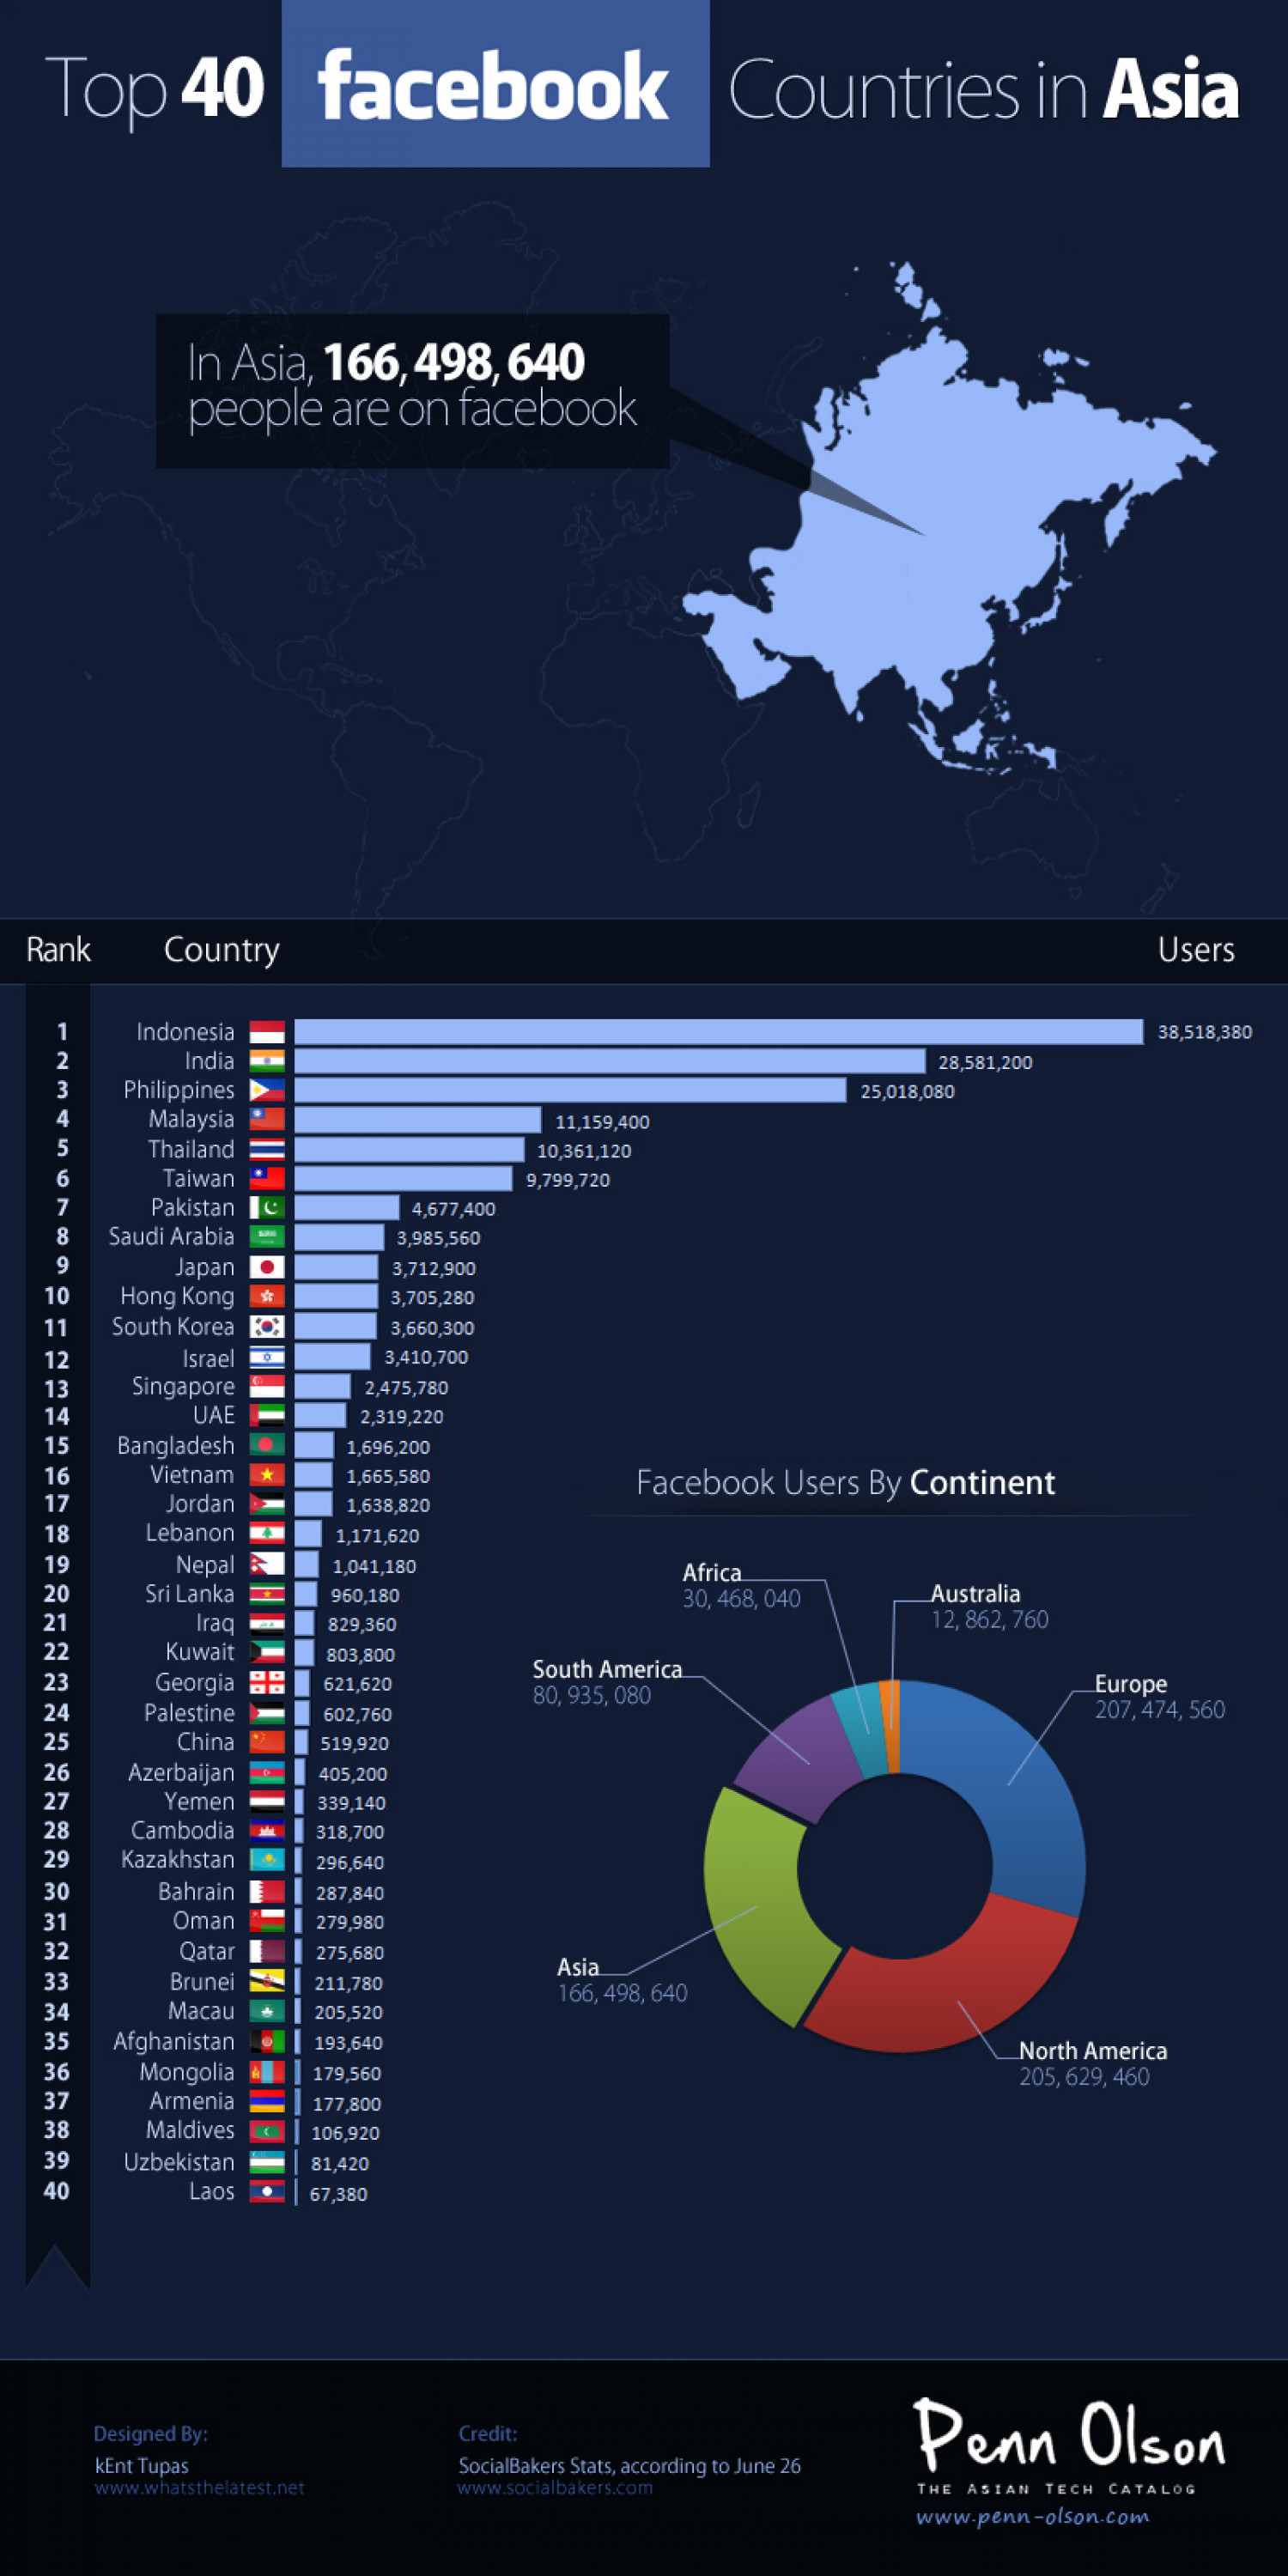 Top 40 Facebook Countries in Asia Infographic